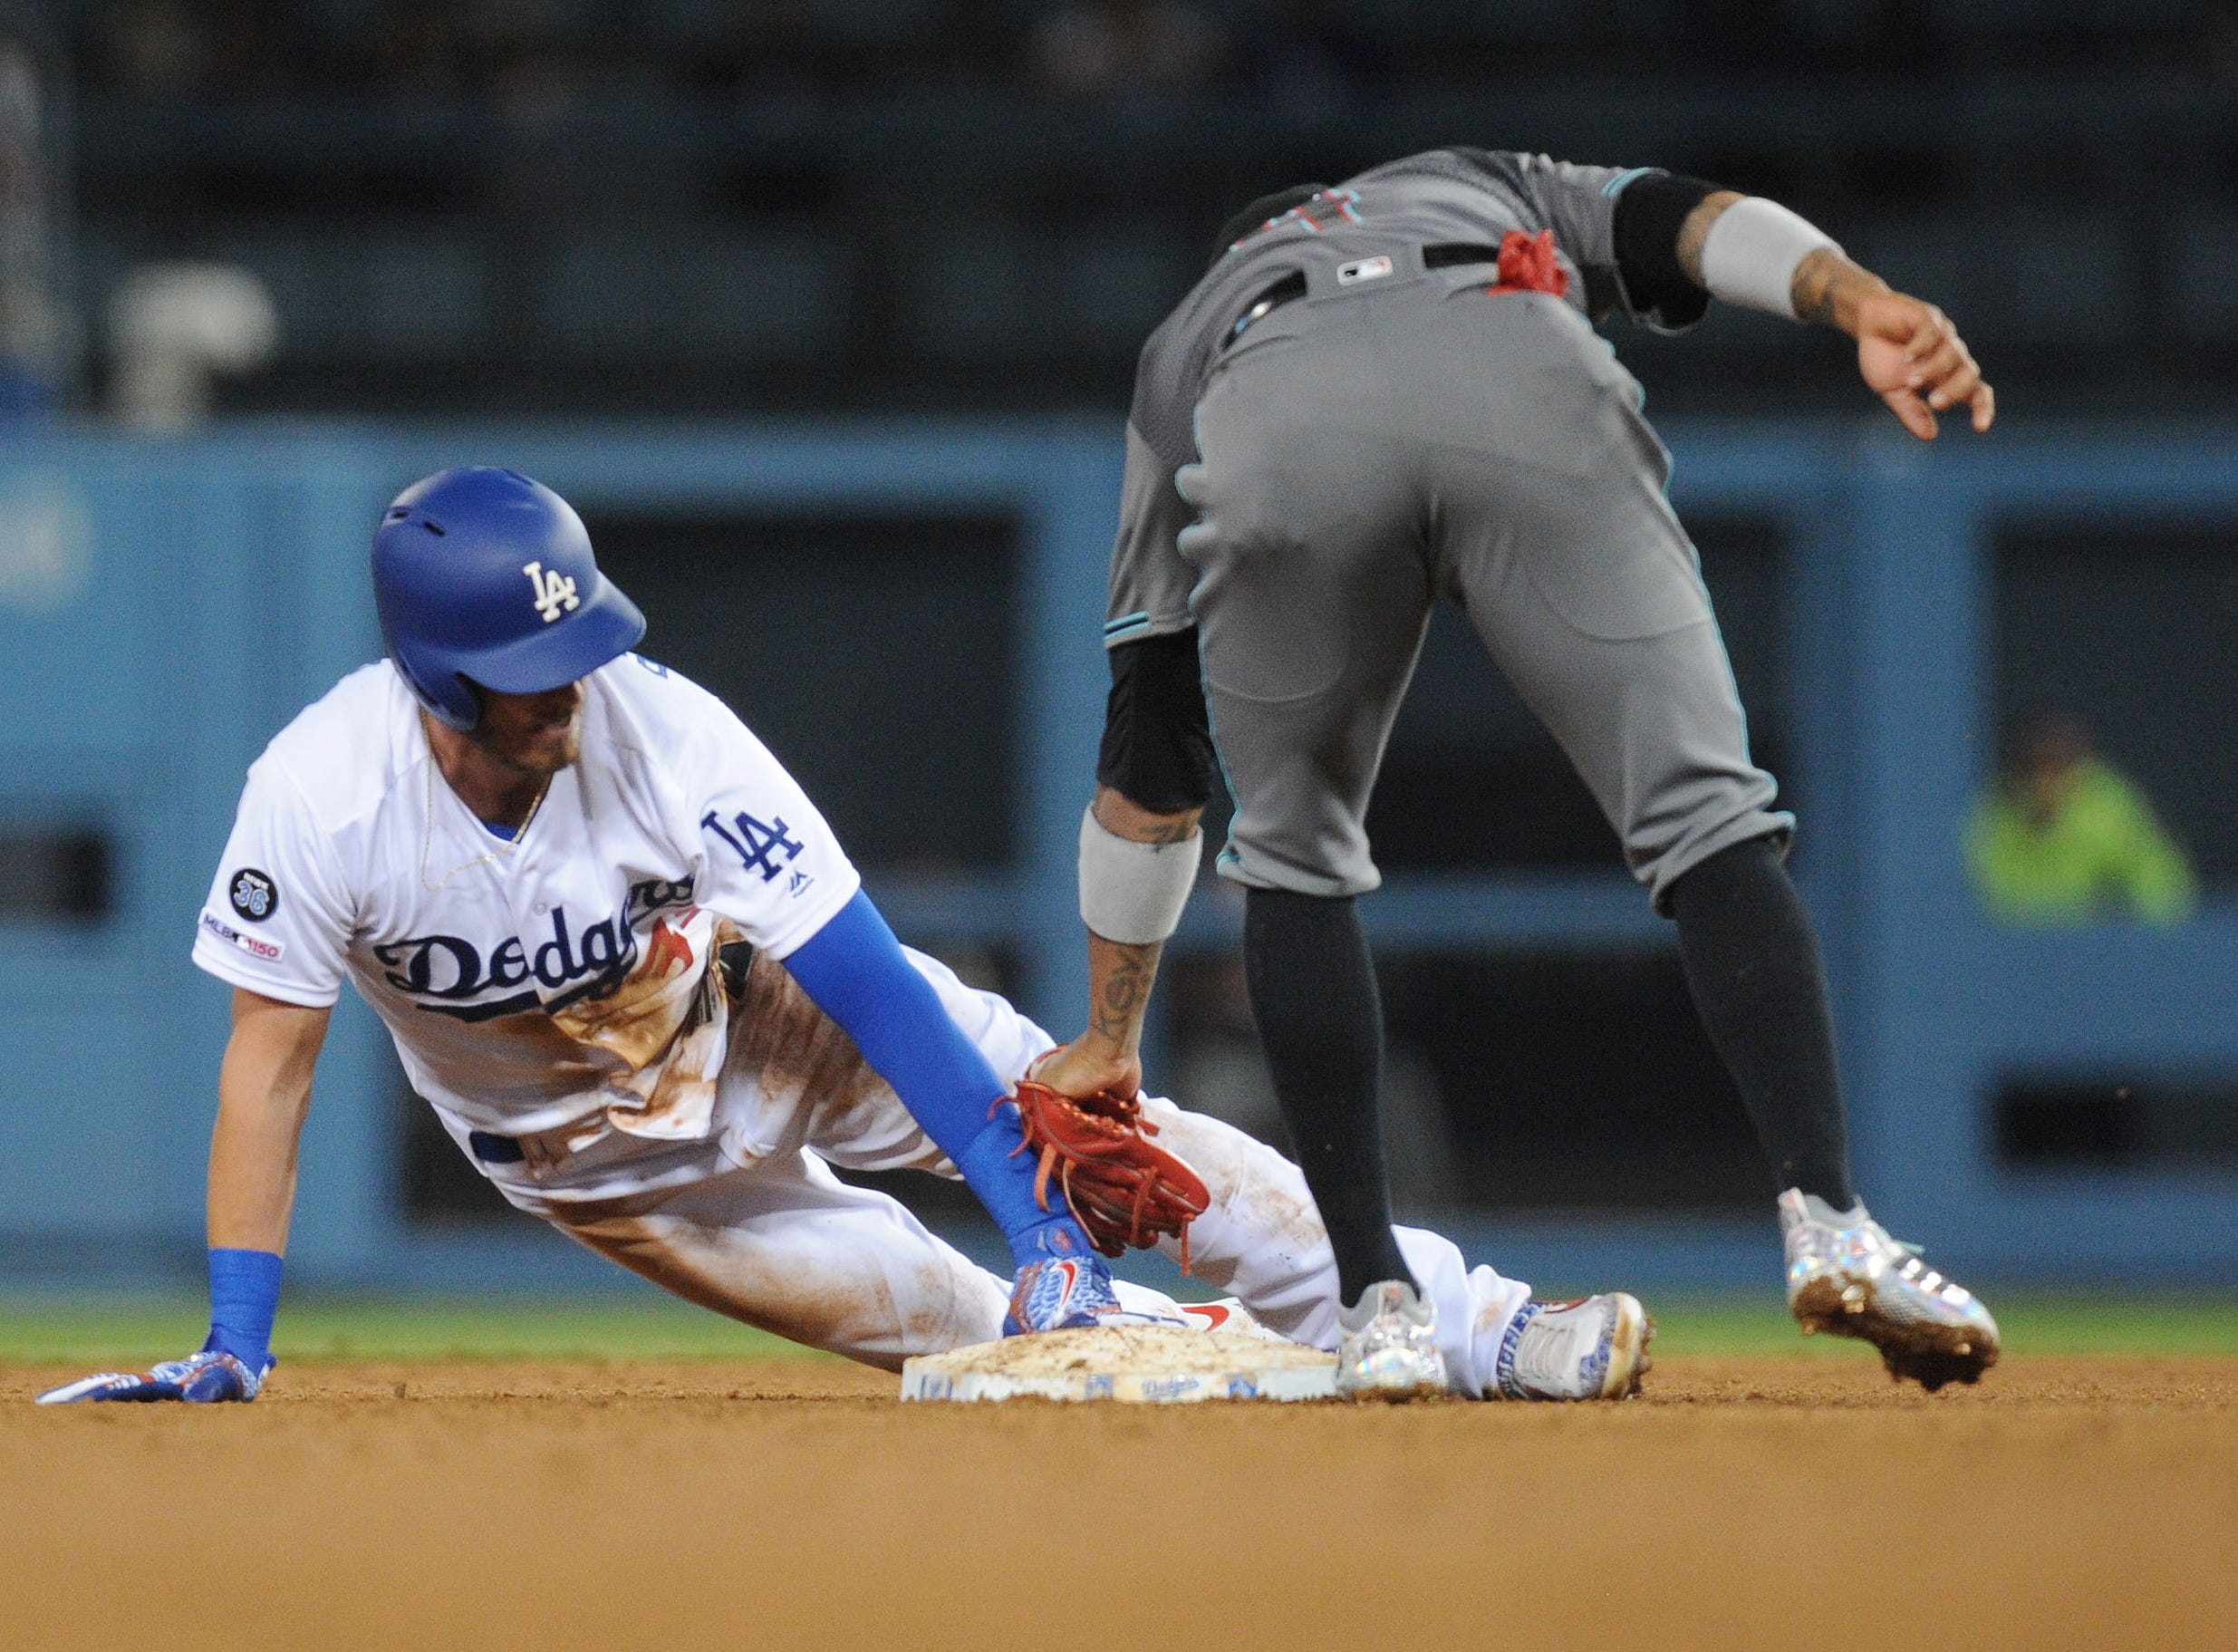 March 29, 2019; Los Angeles, CA, USA; Los Angeles Dodgers right fielder Cody Bellinger (35) steals second against the Arizona Diamondbacks during the fourth inning at Dodger Stadium. Mandatory Credit: Gary A. Vasquez-USA TODAY Sports